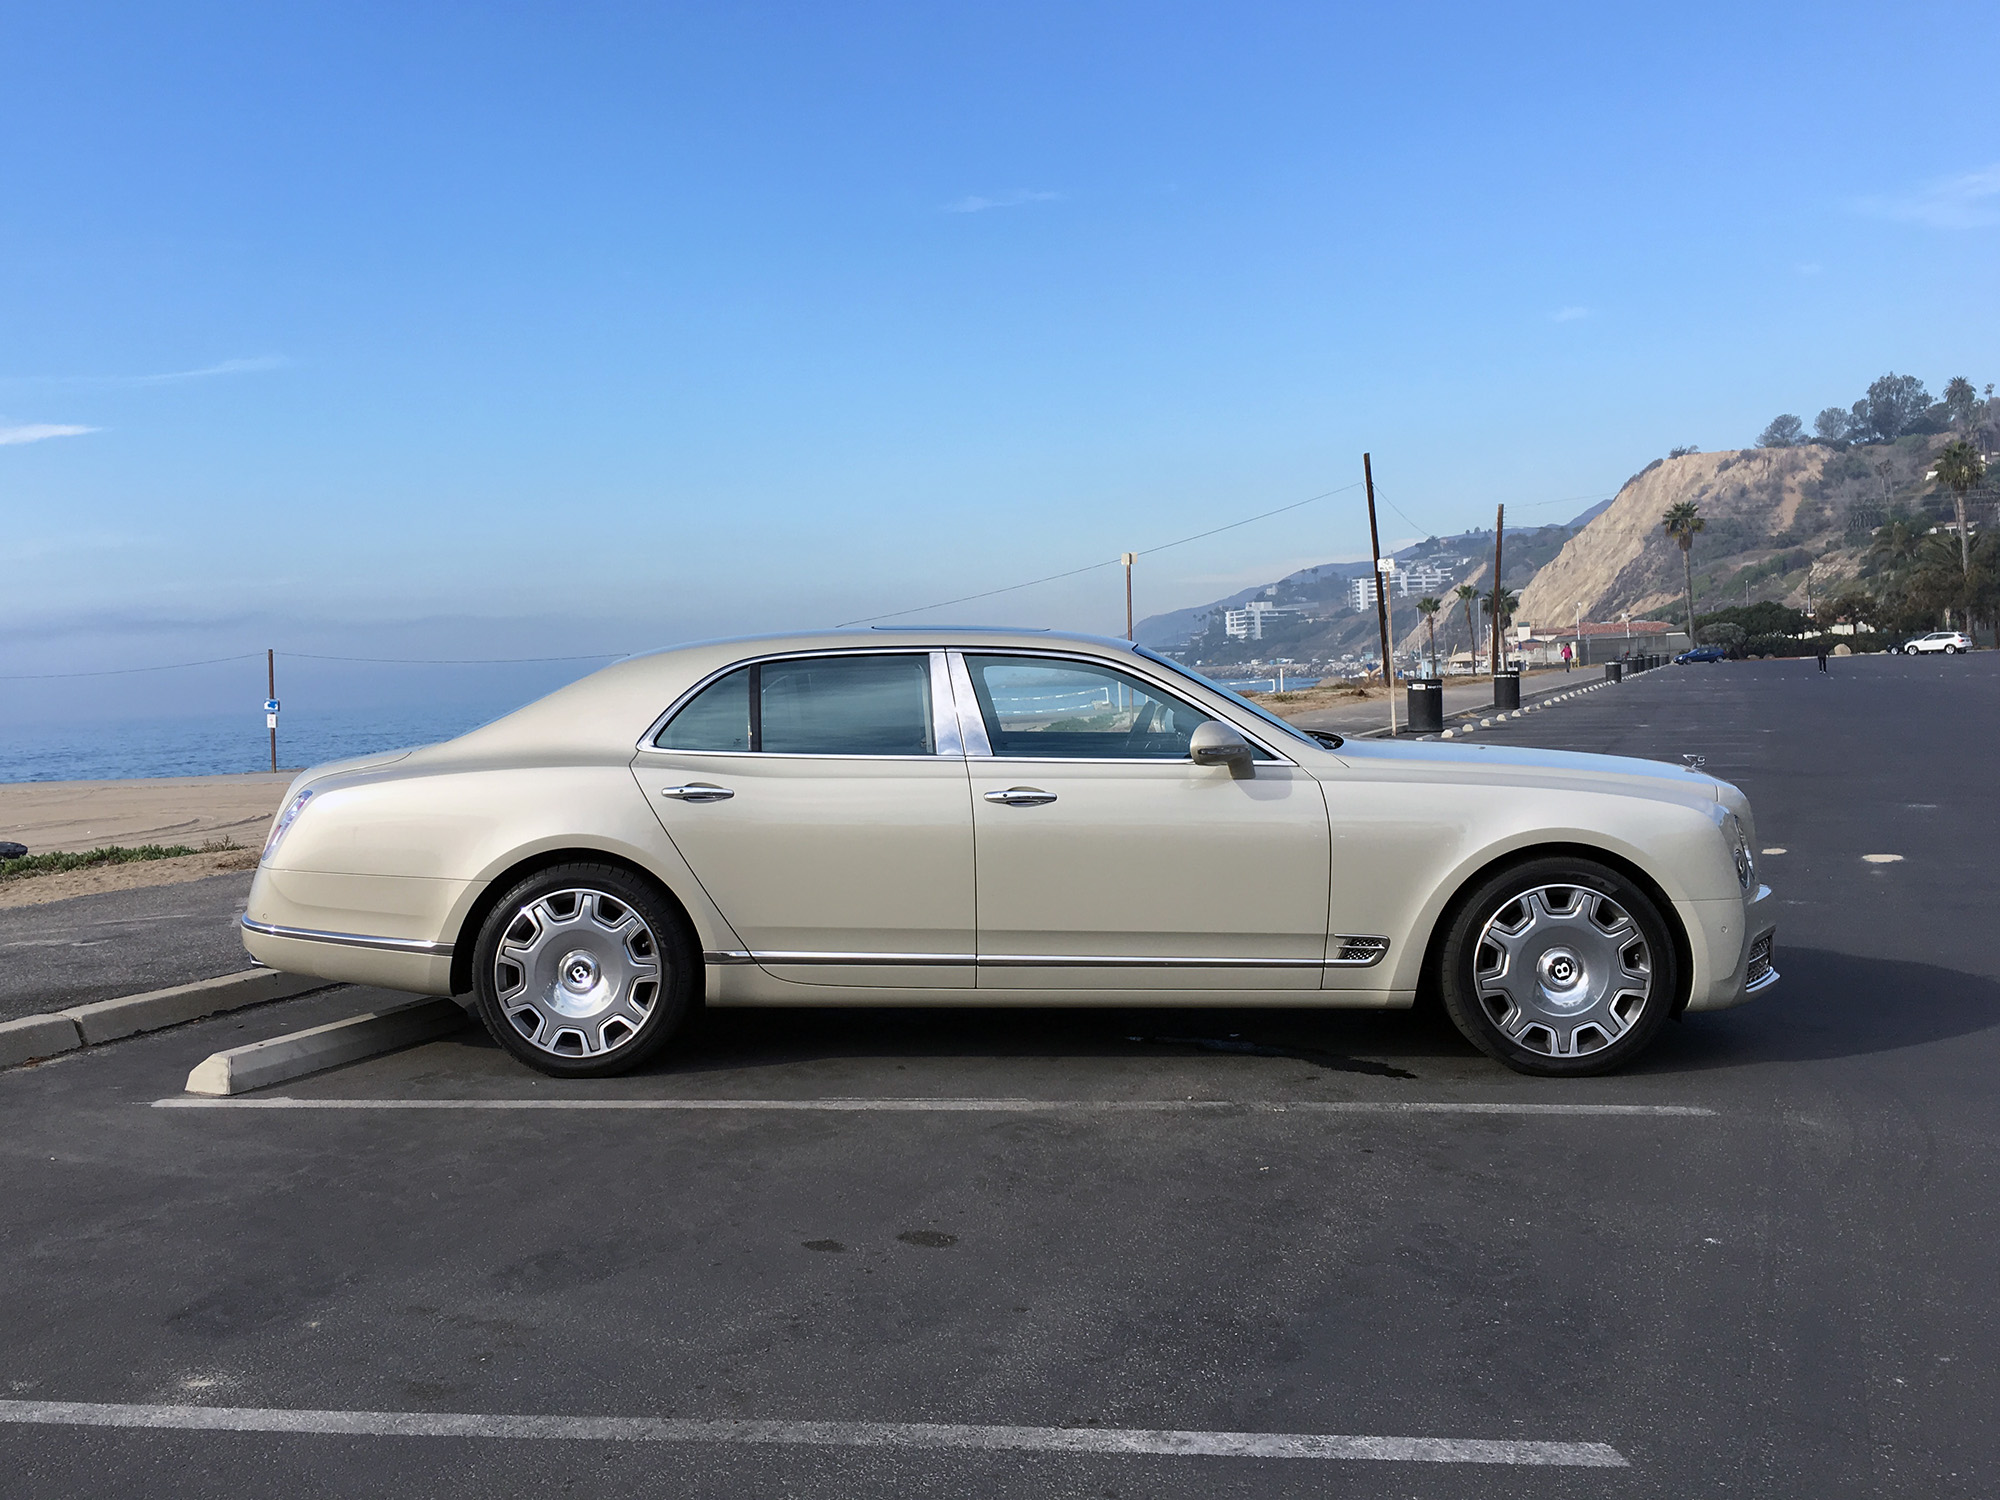 2017 bentley mulsanne review caradvice 2017 bentley mulsanne review vanachro Images